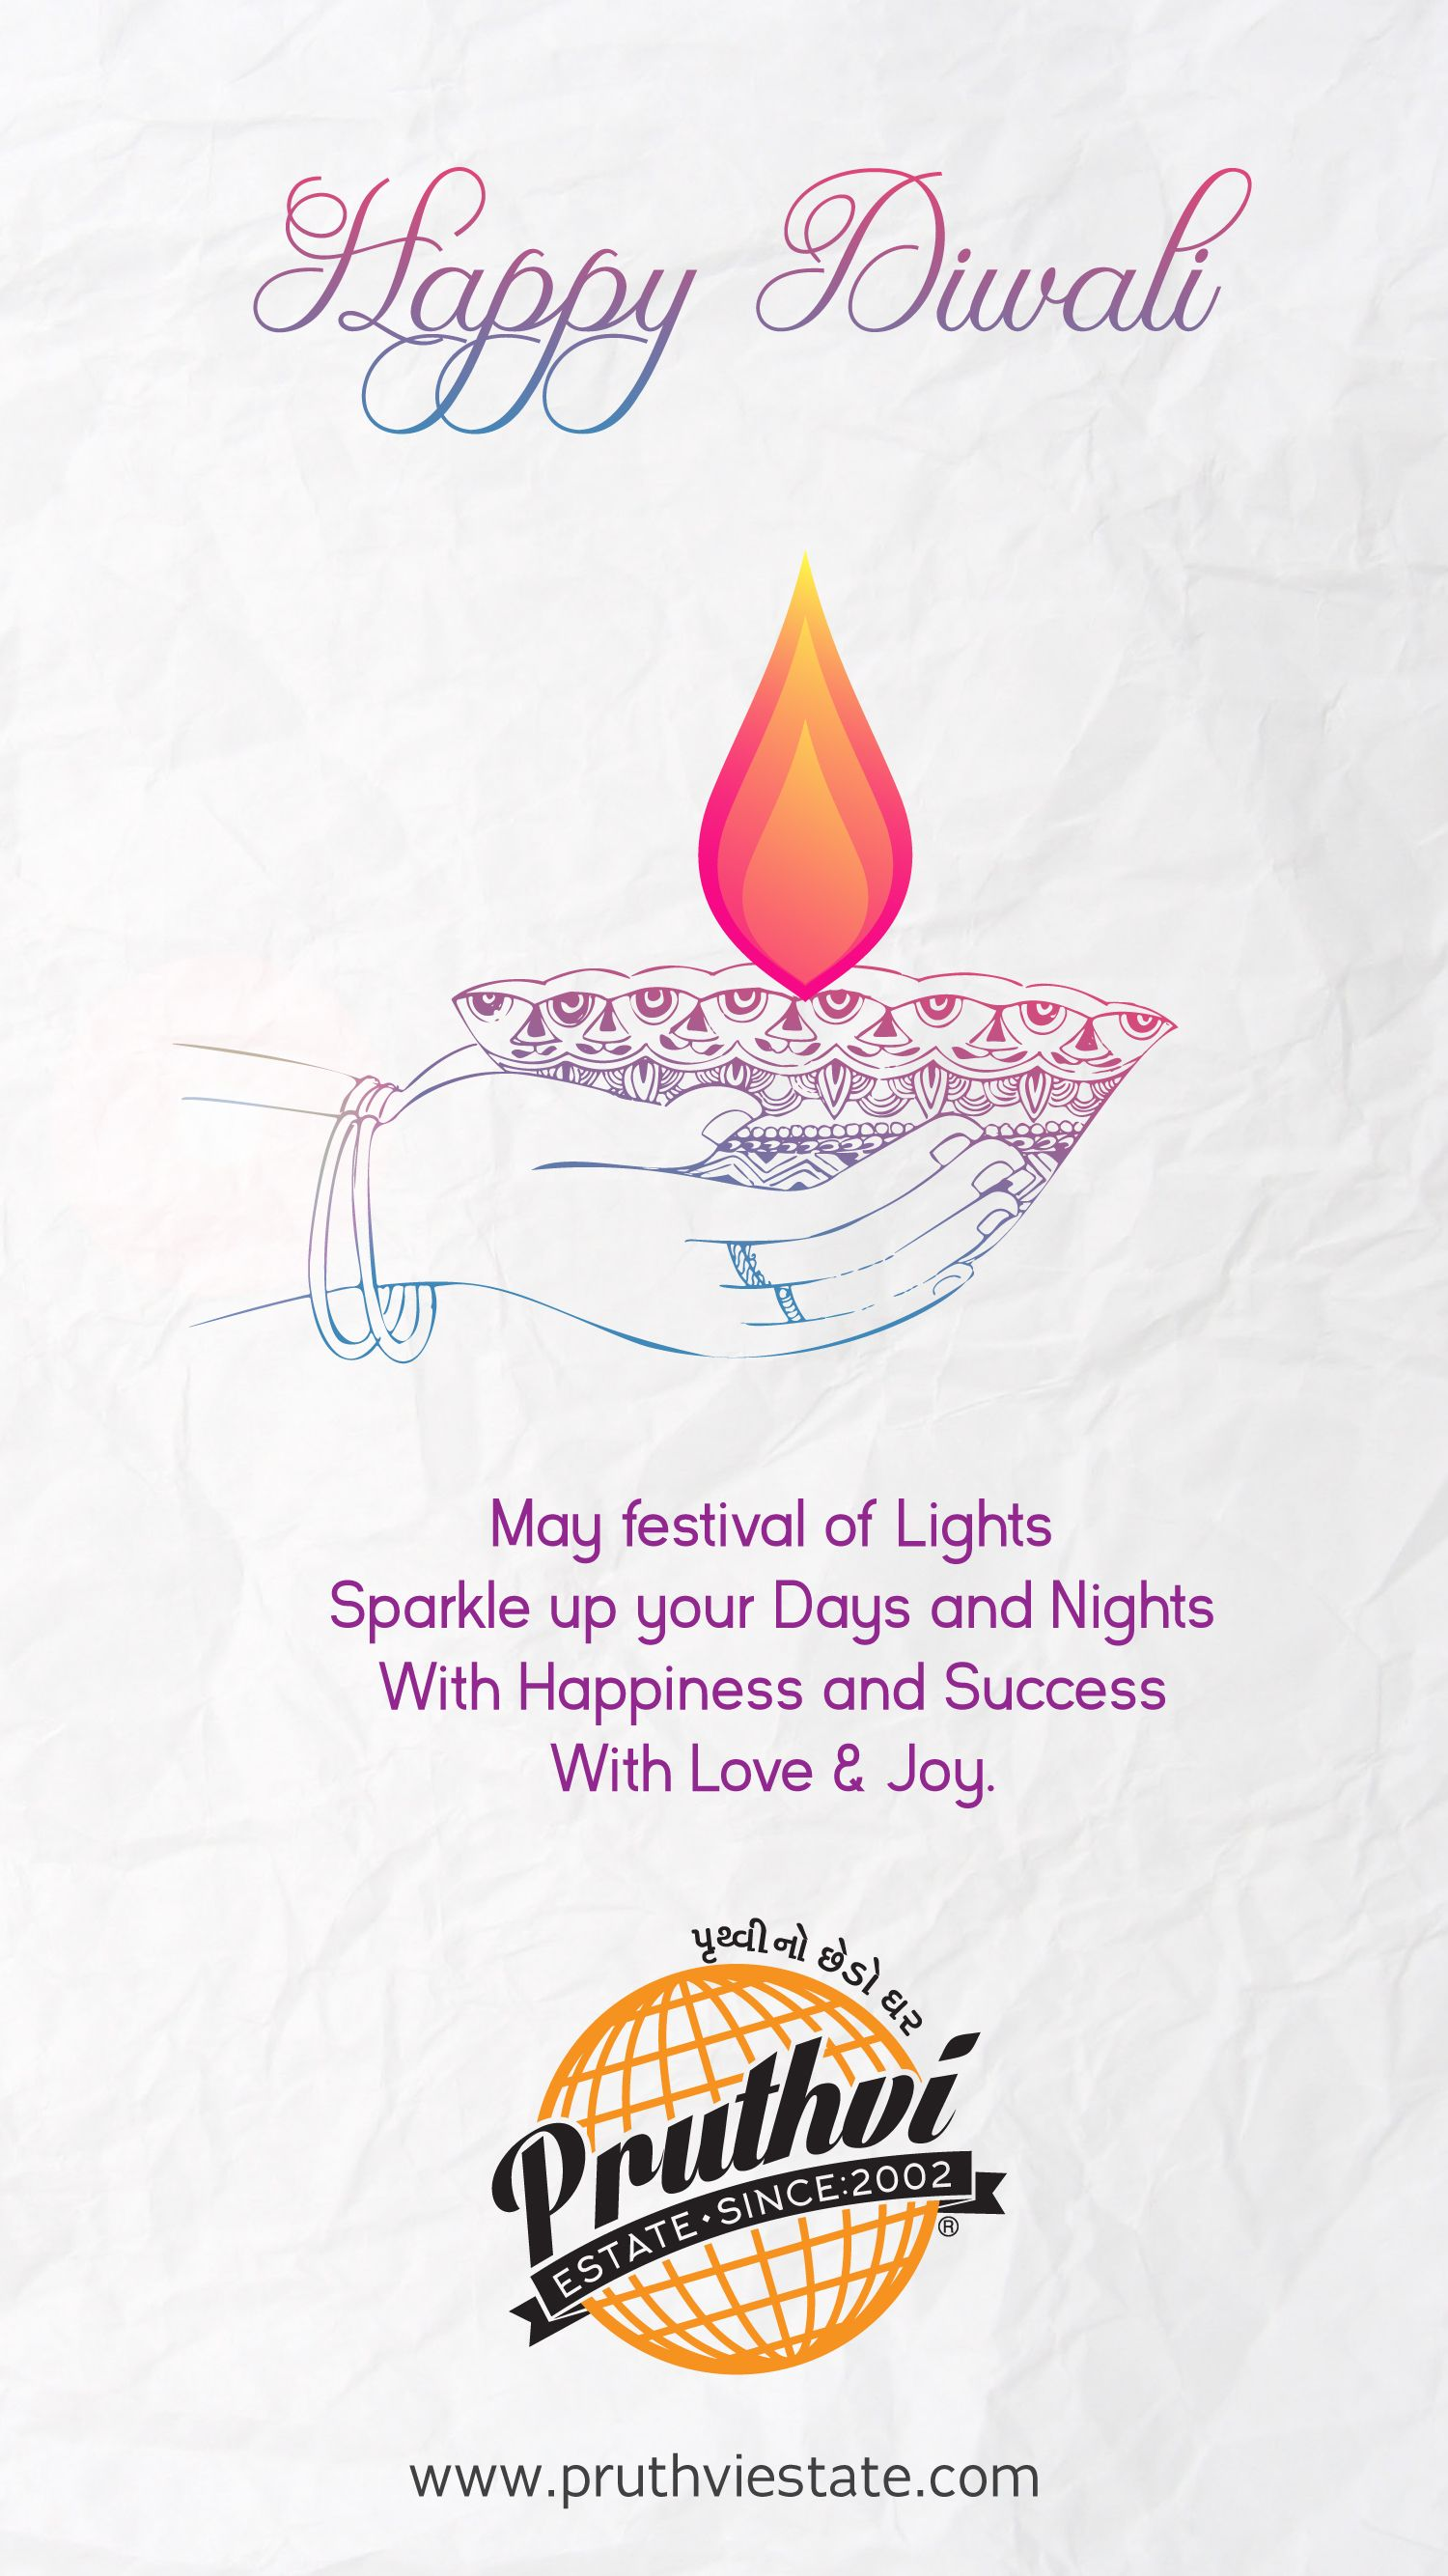 May festival of Lights sparkle up your Days and Nights